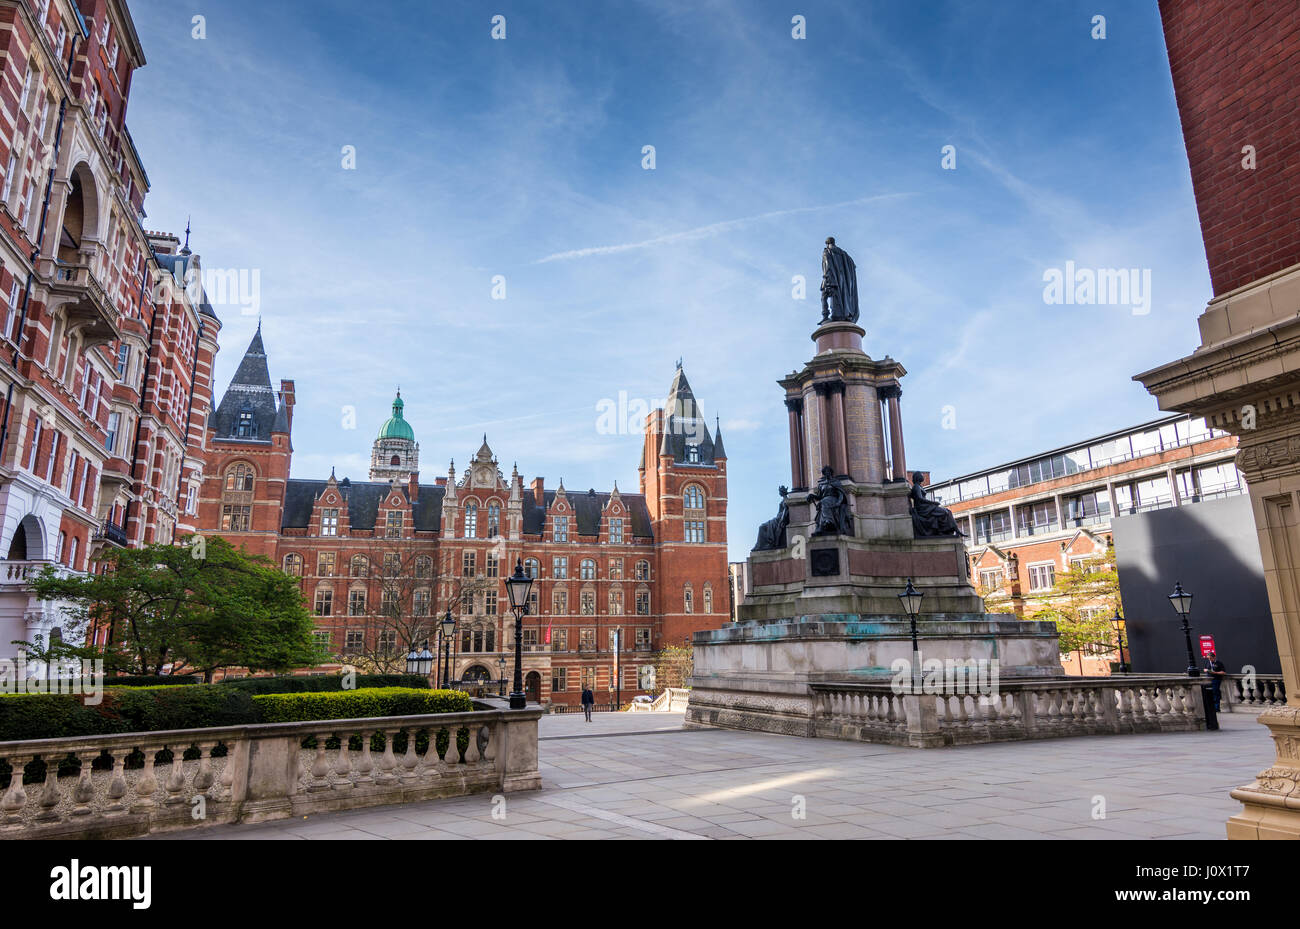 Londres, Reino Unido - 5 de abril de 2017: El Royal College of Music y Royal Albert hall estatua en South Kensington, Foto de stock